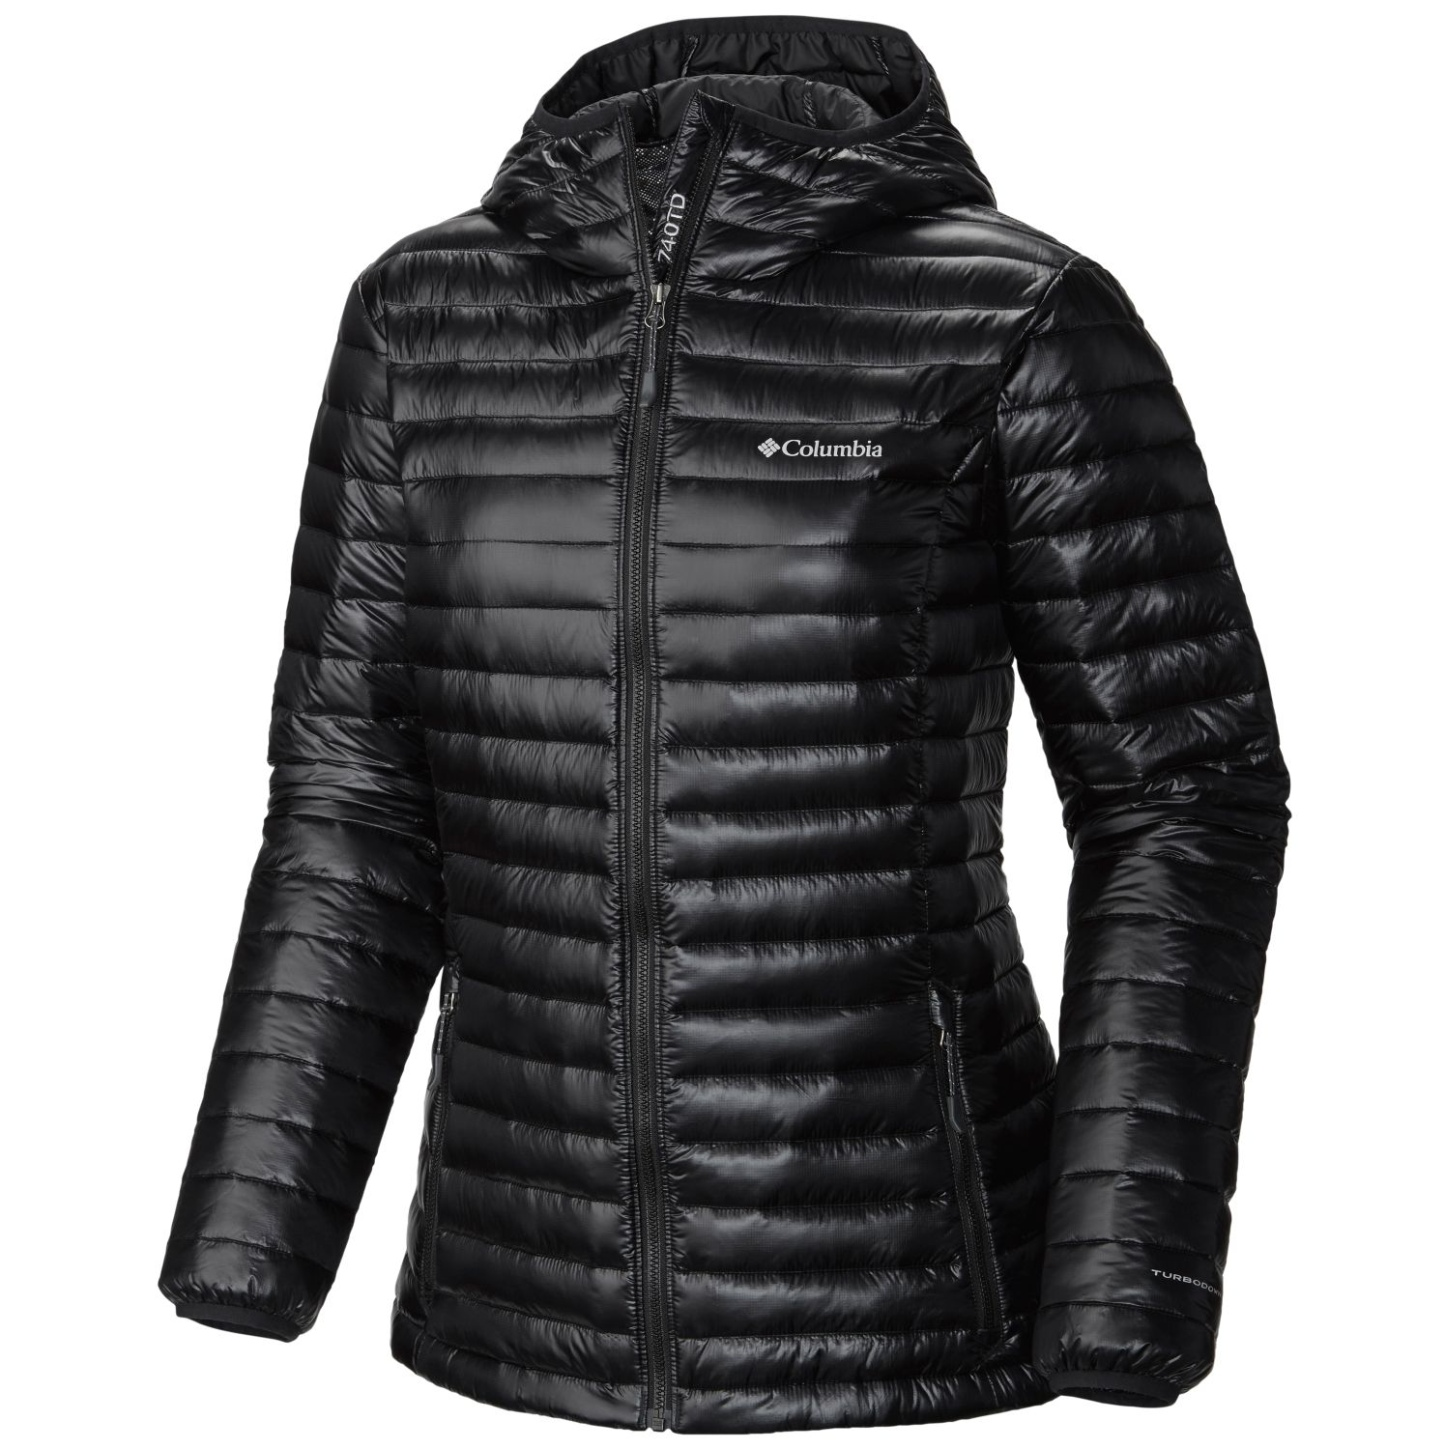 Columbia Women's Platinum Plus 740 TurboDown Hooded Jacket Black-30